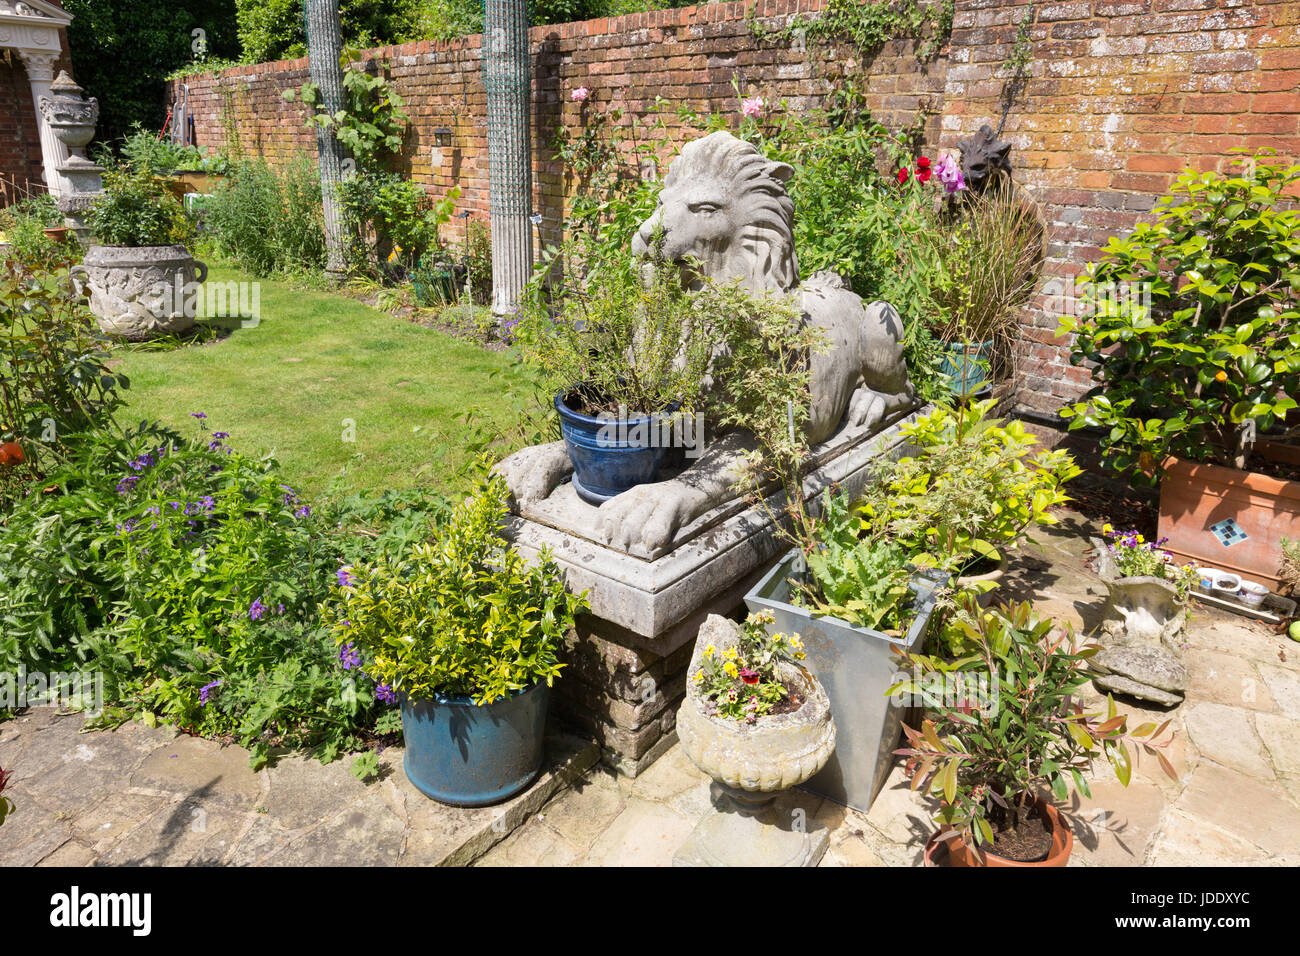 Large Garden Ornaments Including Lion Statues And Pots In An Ornate English  Garden, Kent England